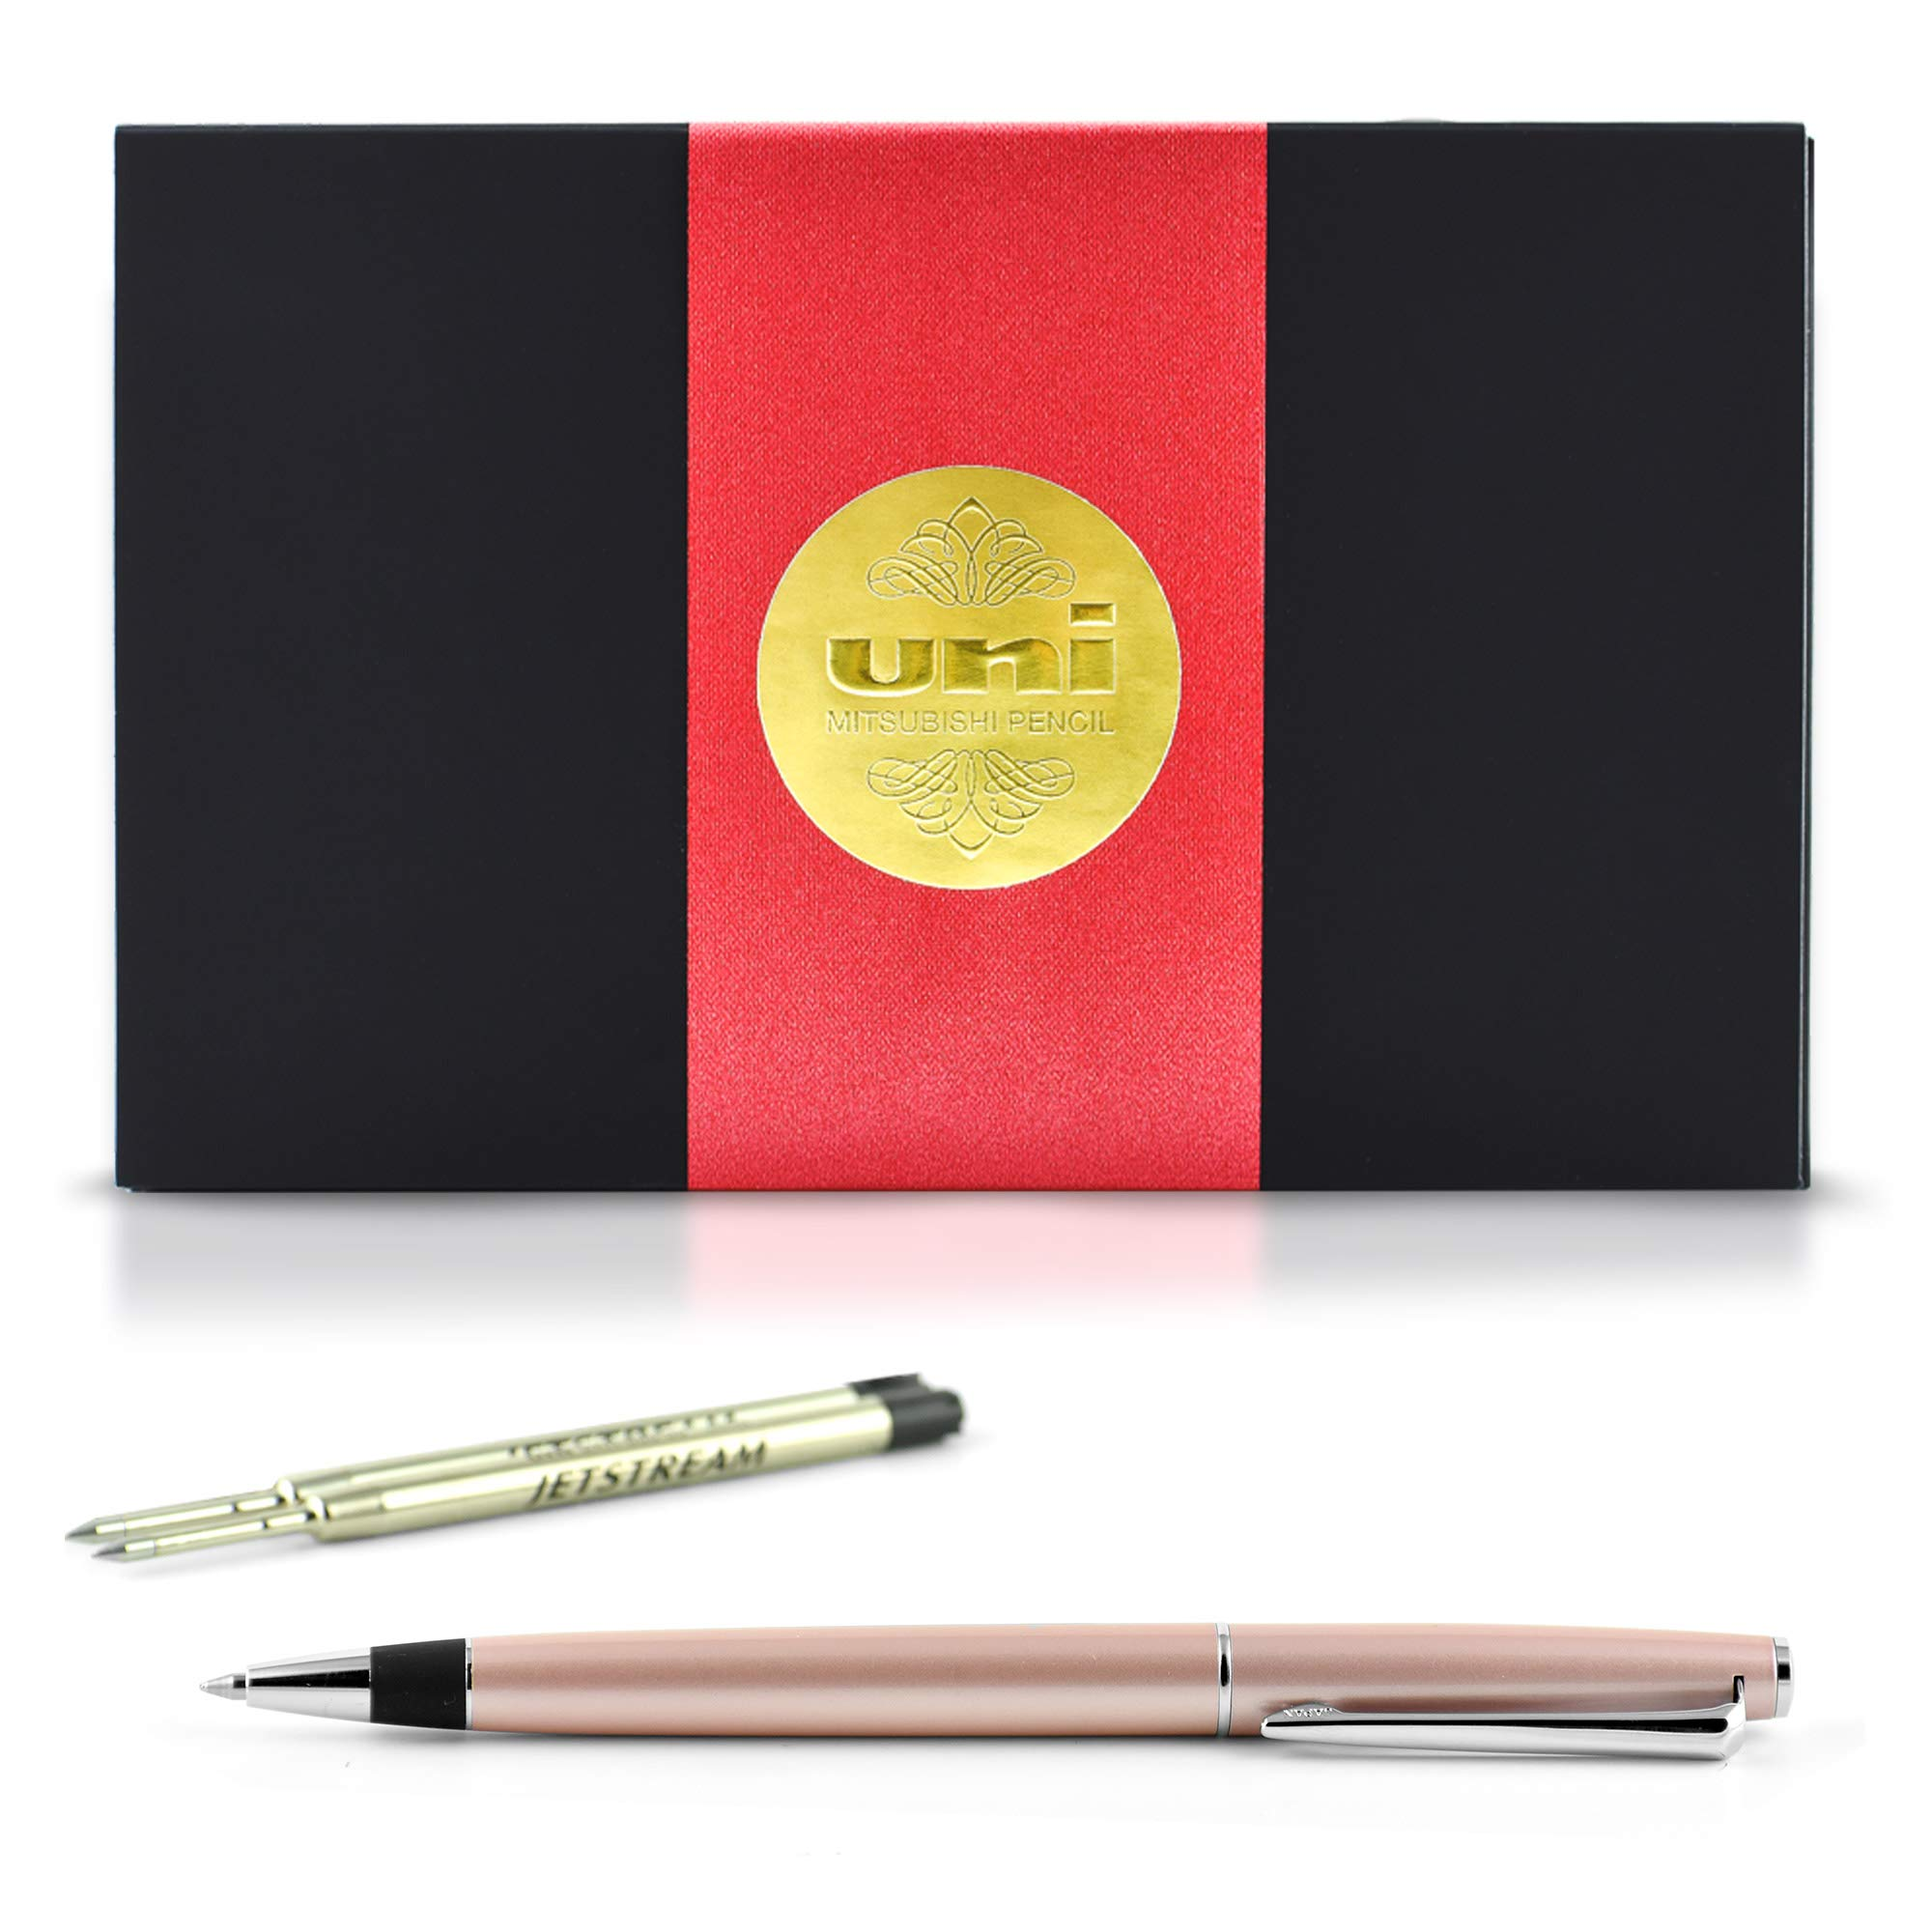 uni JETSTREAM PRIME TWIST - Includes one pen + two Parker Style refills (SXR-600-07) in Exclusive uni Gift Box (Pink)